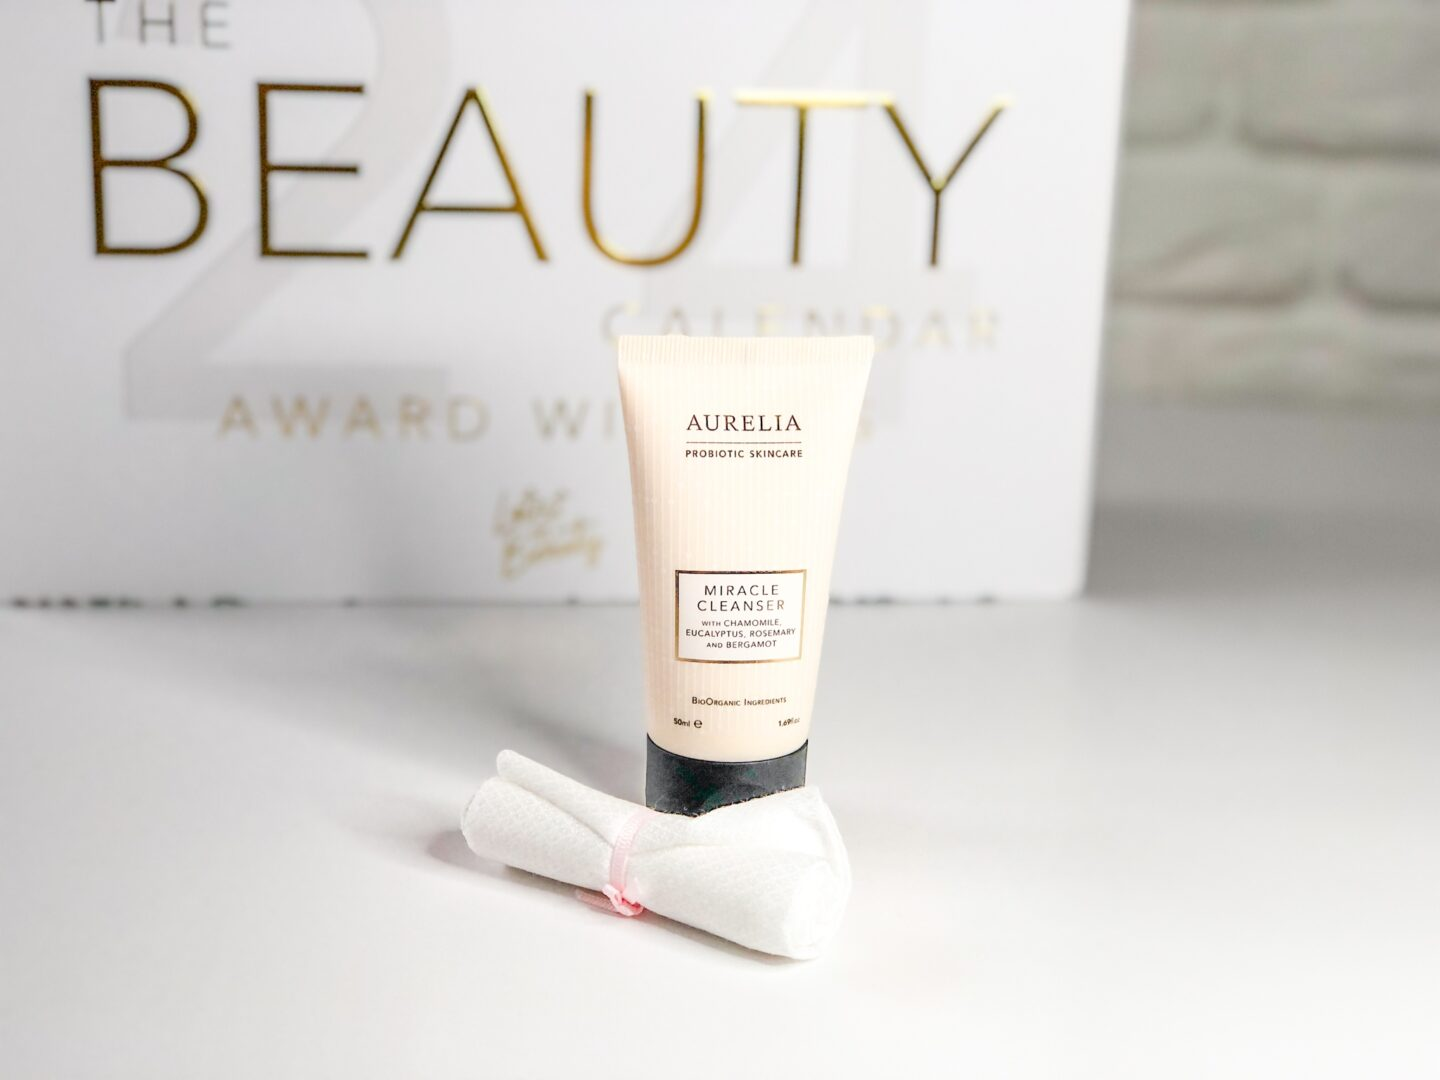 Aurelia Miracle Cleanser and Muslin Cloth - Beauty Calendar: The Award Winners